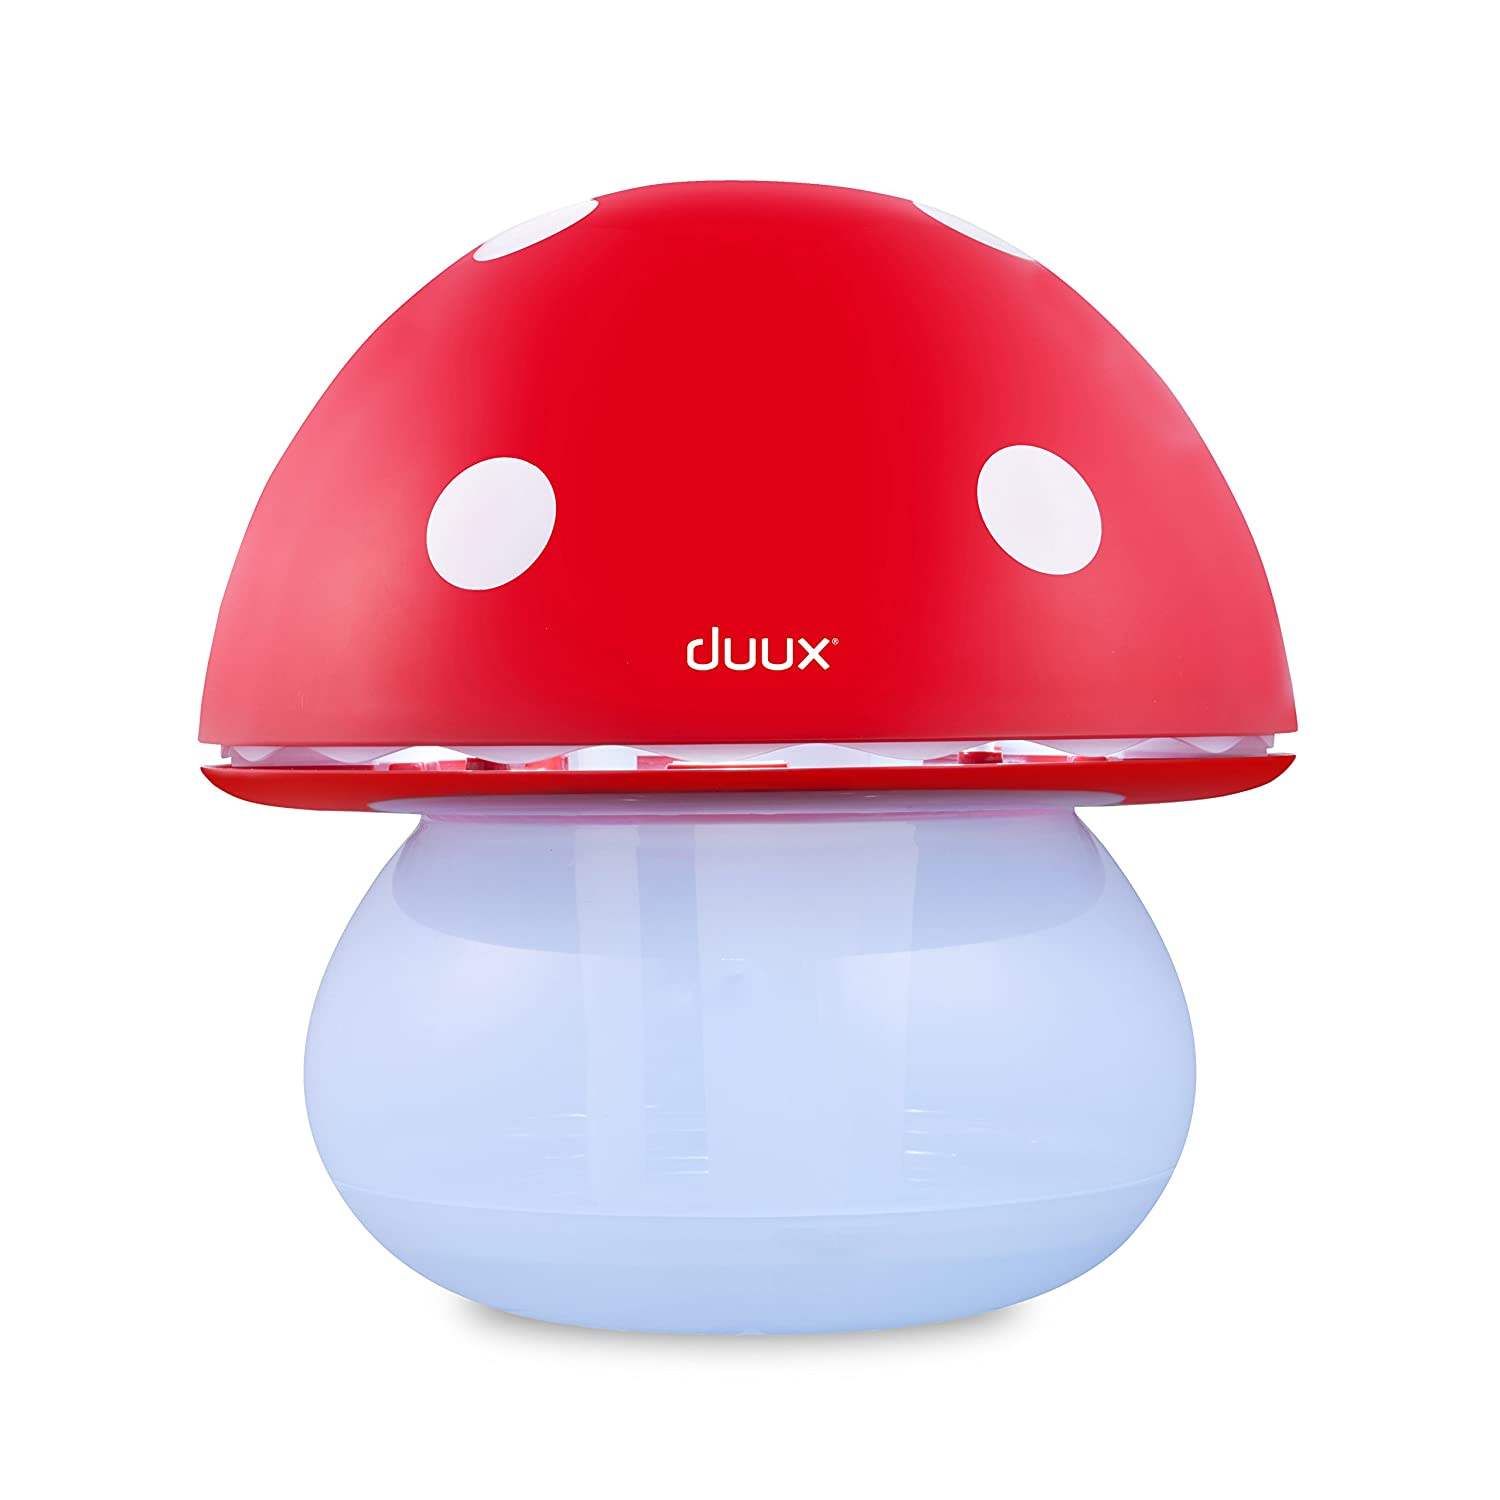 Duux Air Humidifier and Night Light - Mushroom Red DX1000